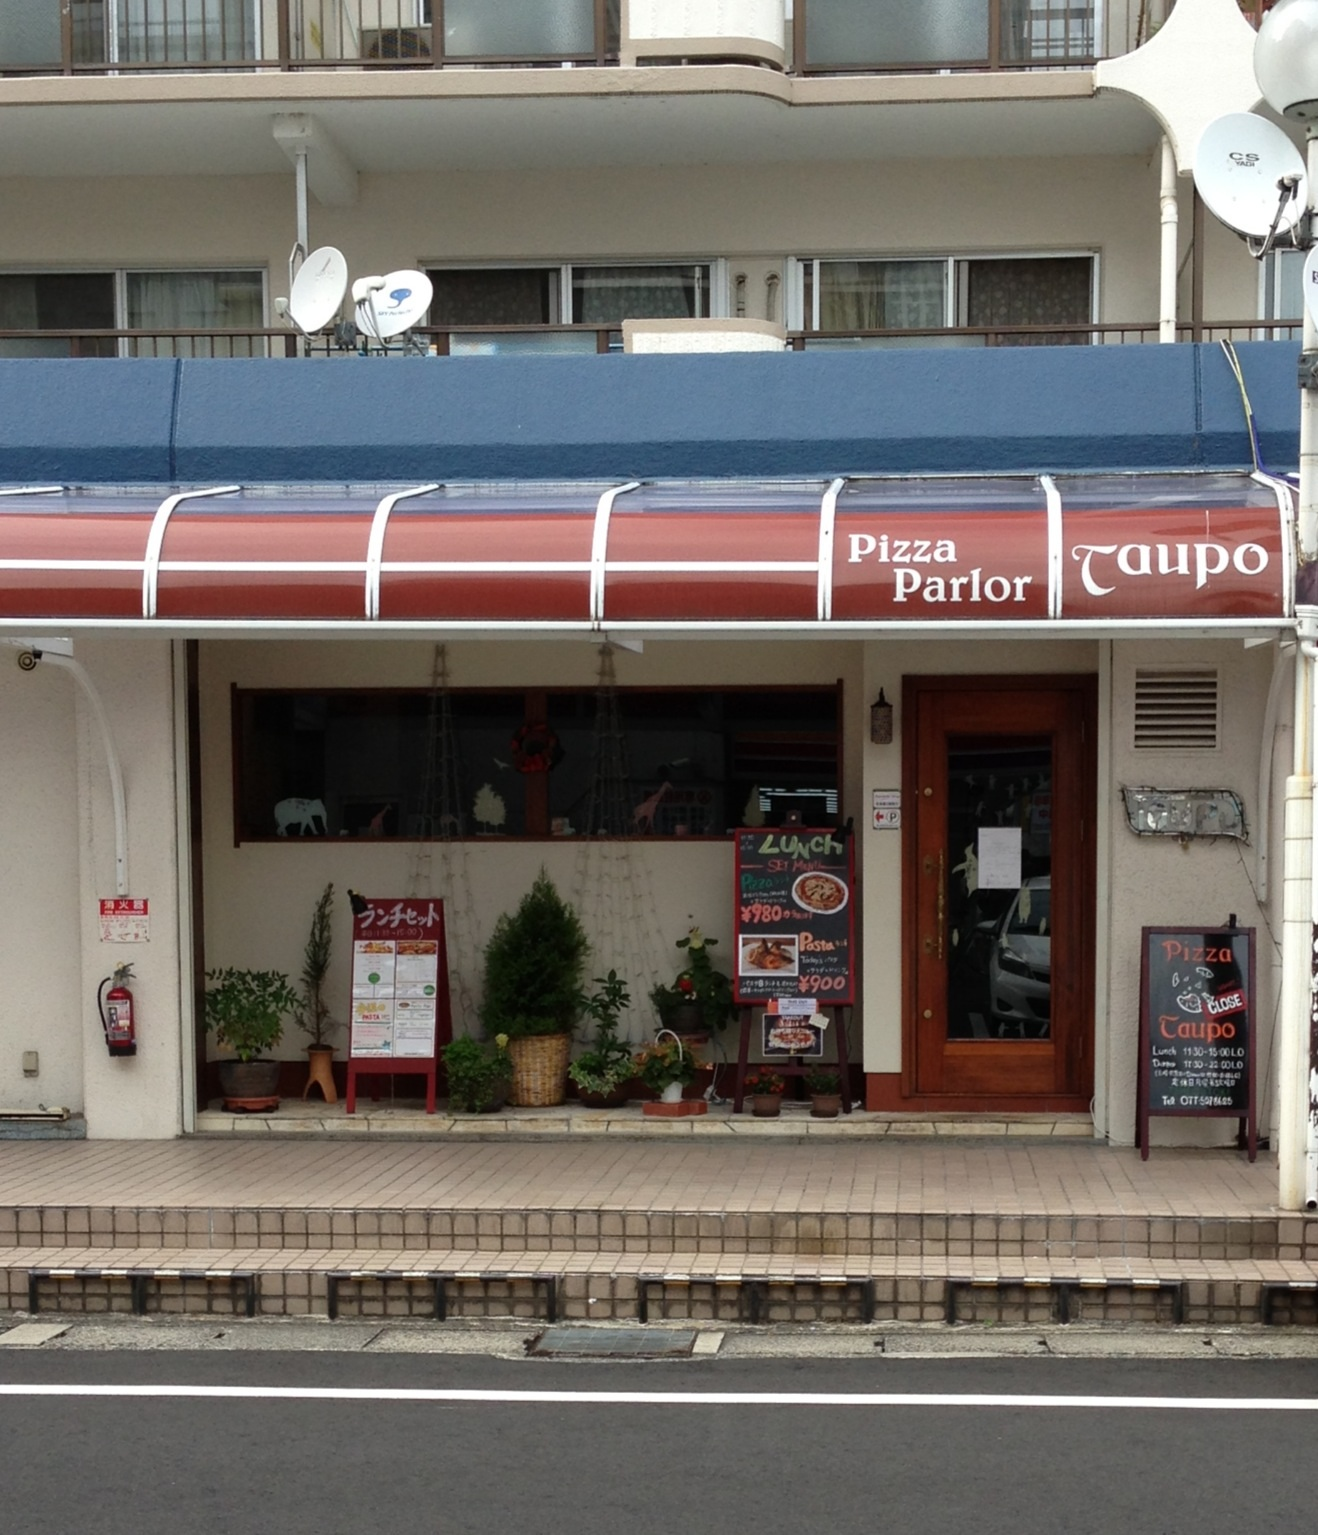 Pizza Parlor Taupo